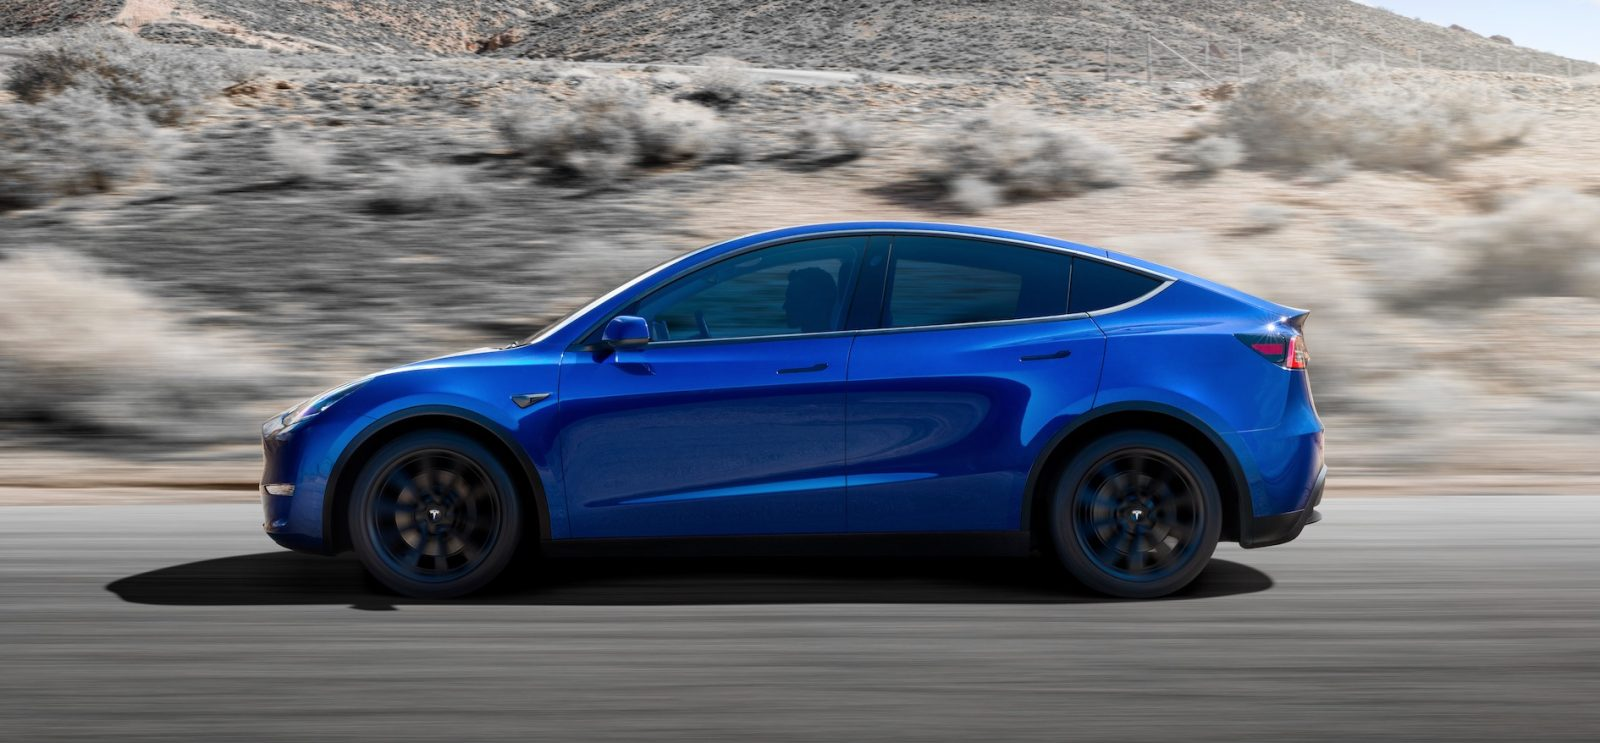 Tesla Unveils Model Y Electric Suv With 300 Miles Range And 7 Seats